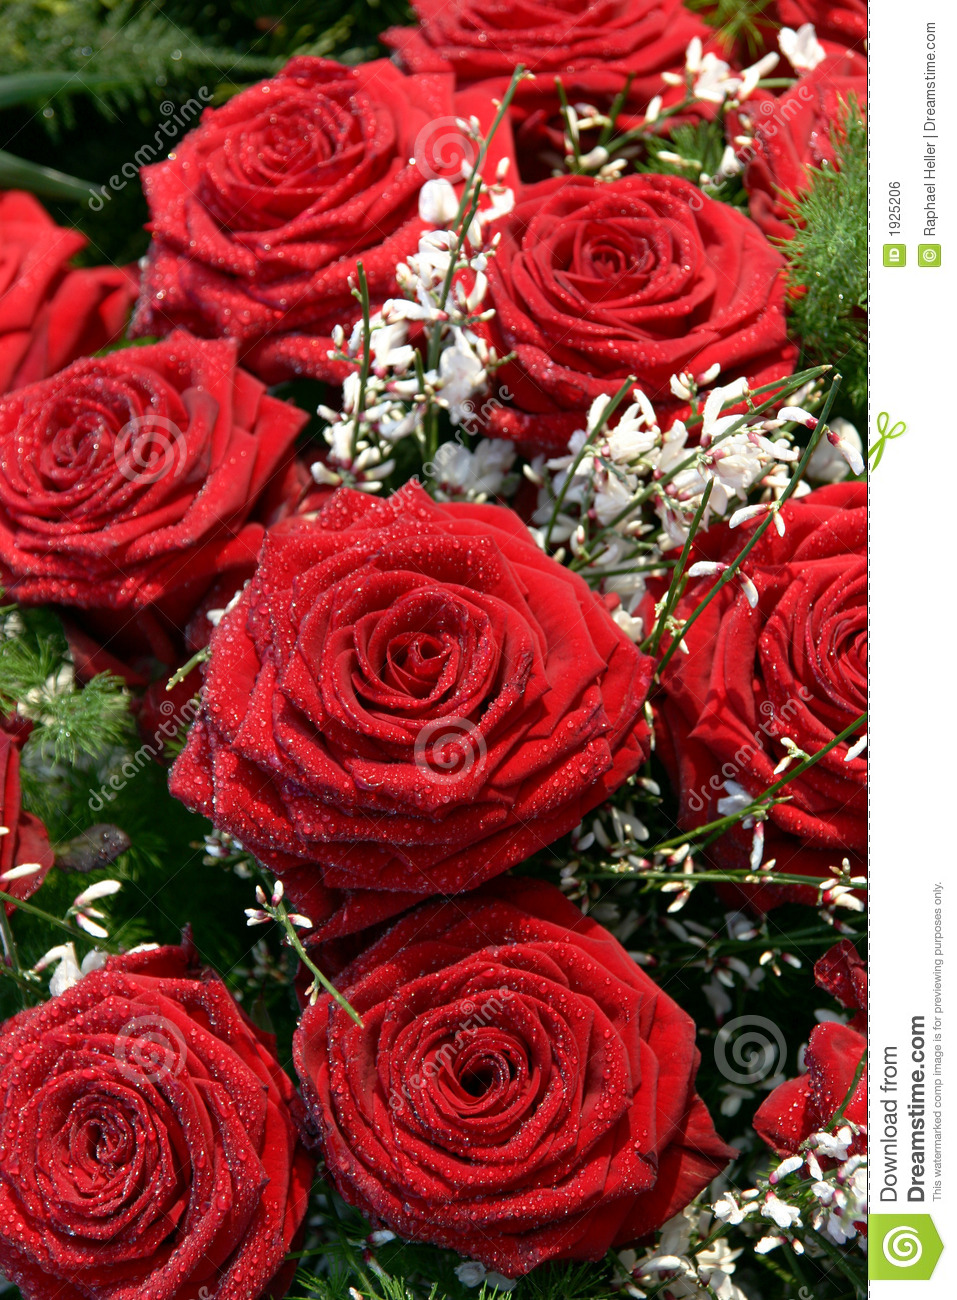 Red Rose With White Flowers Stock Photo 1925206   Megapixl